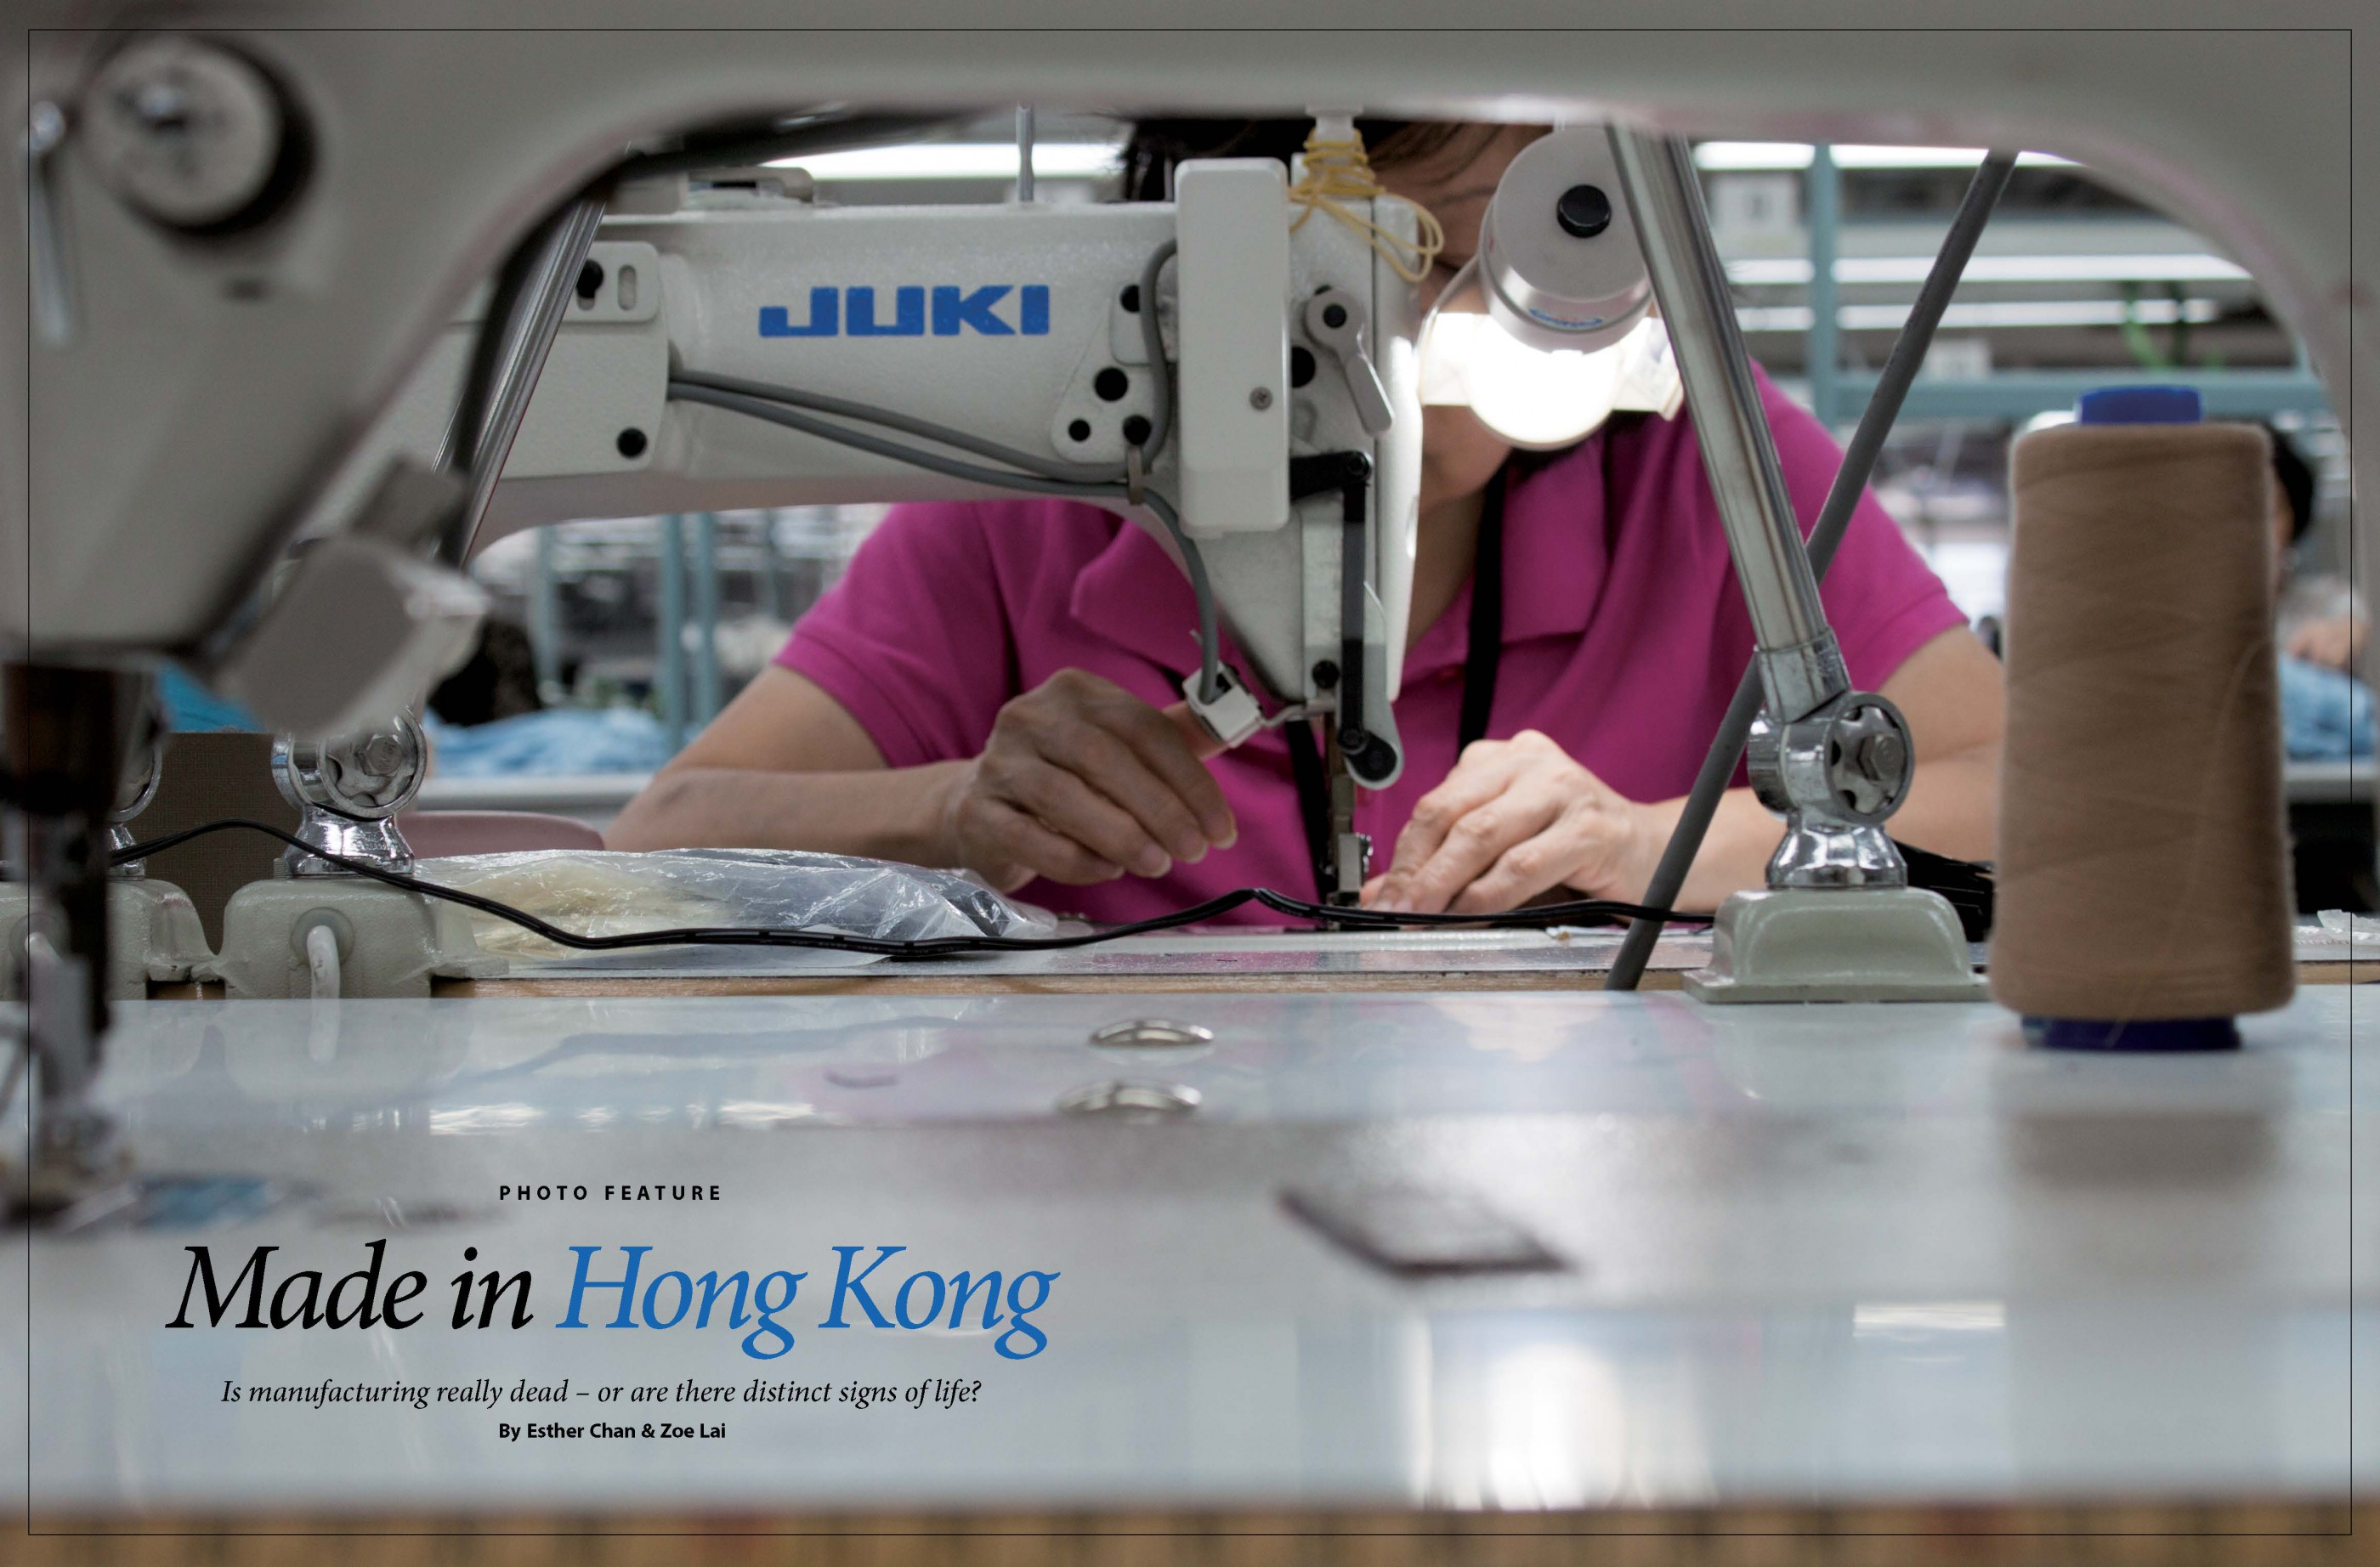 Made in Hong Kong local manufacturing industry